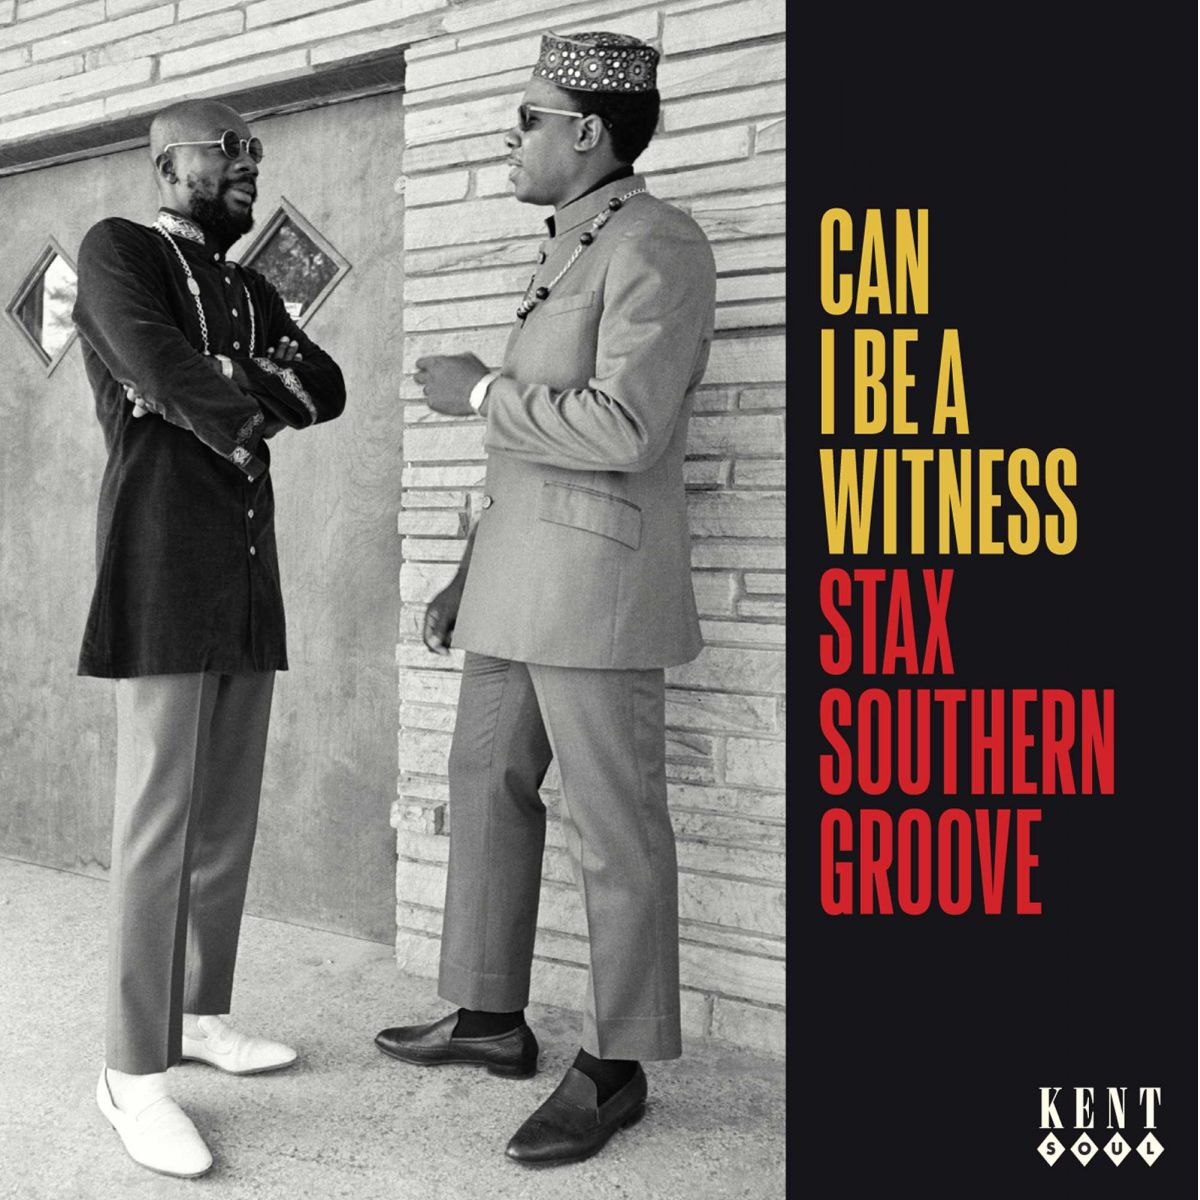 Can I be A Witness - Stax Southern Groove